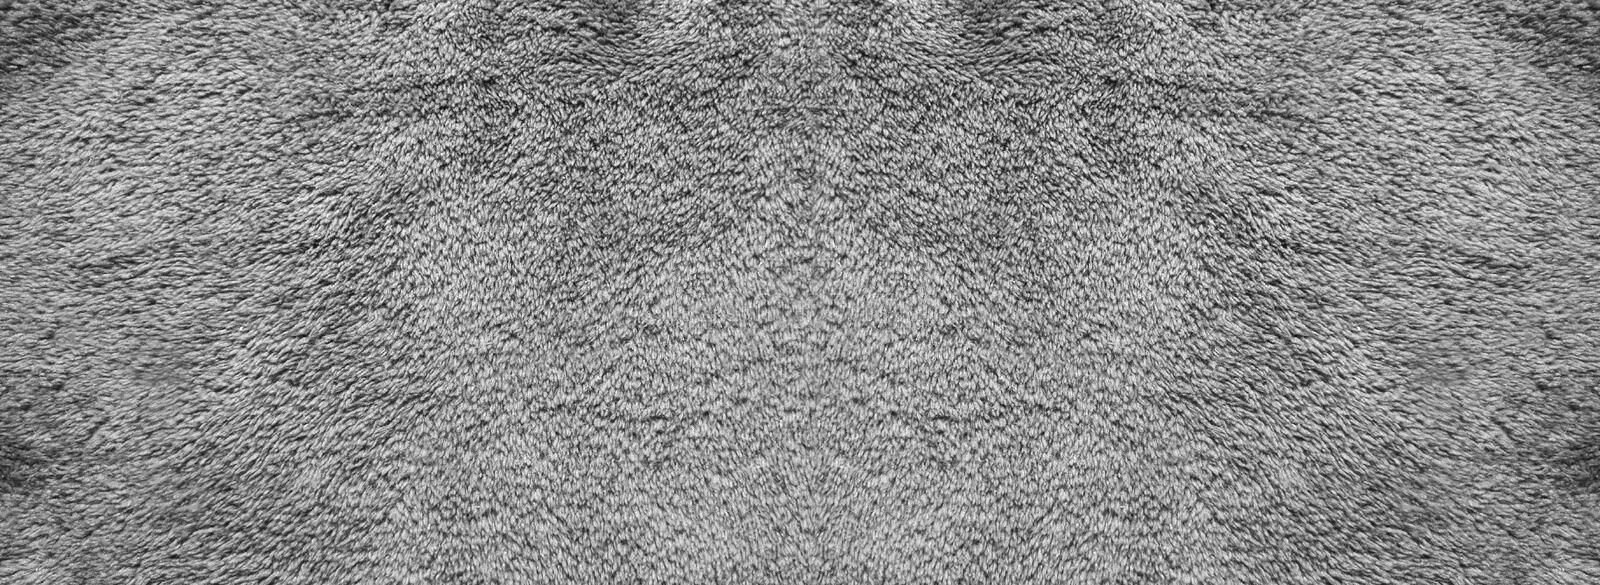 Texture of gray carpet background stock images